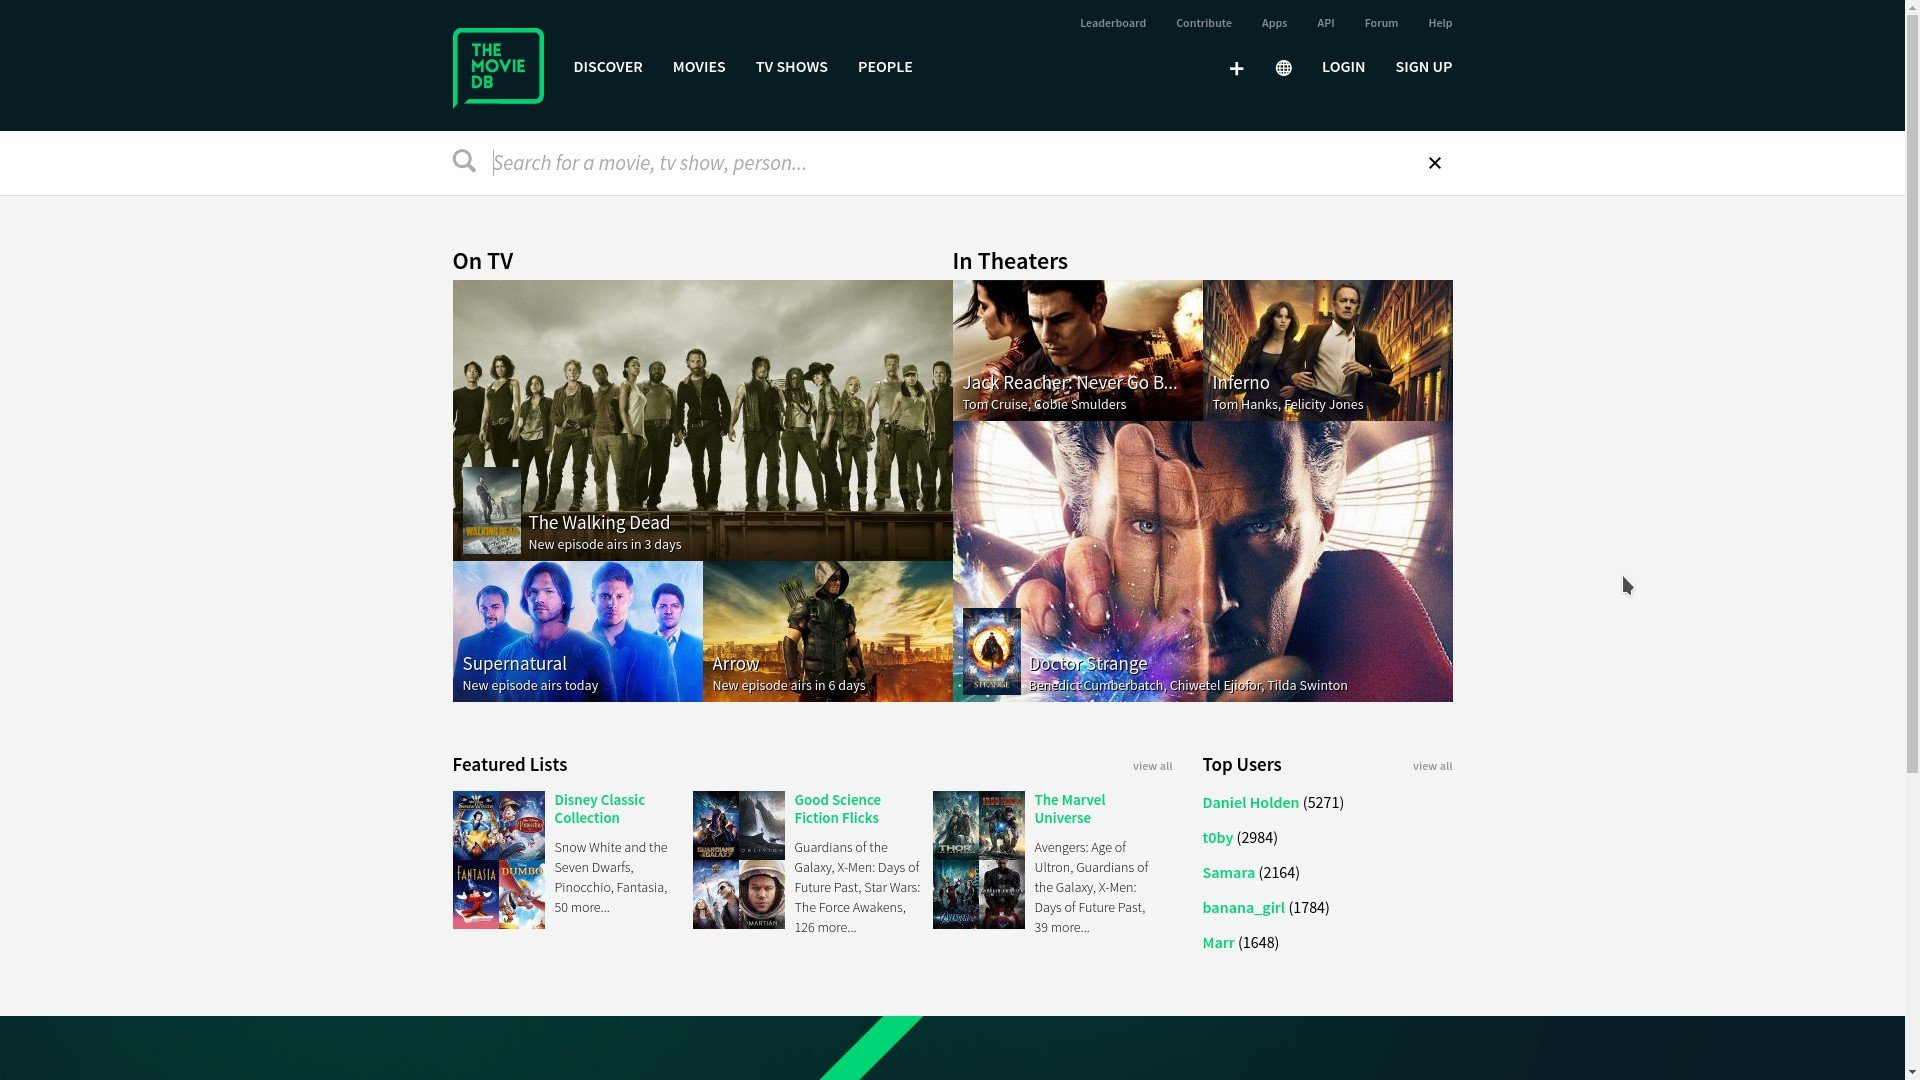 themoviedb org Alternatives and Similar Websites and Apps